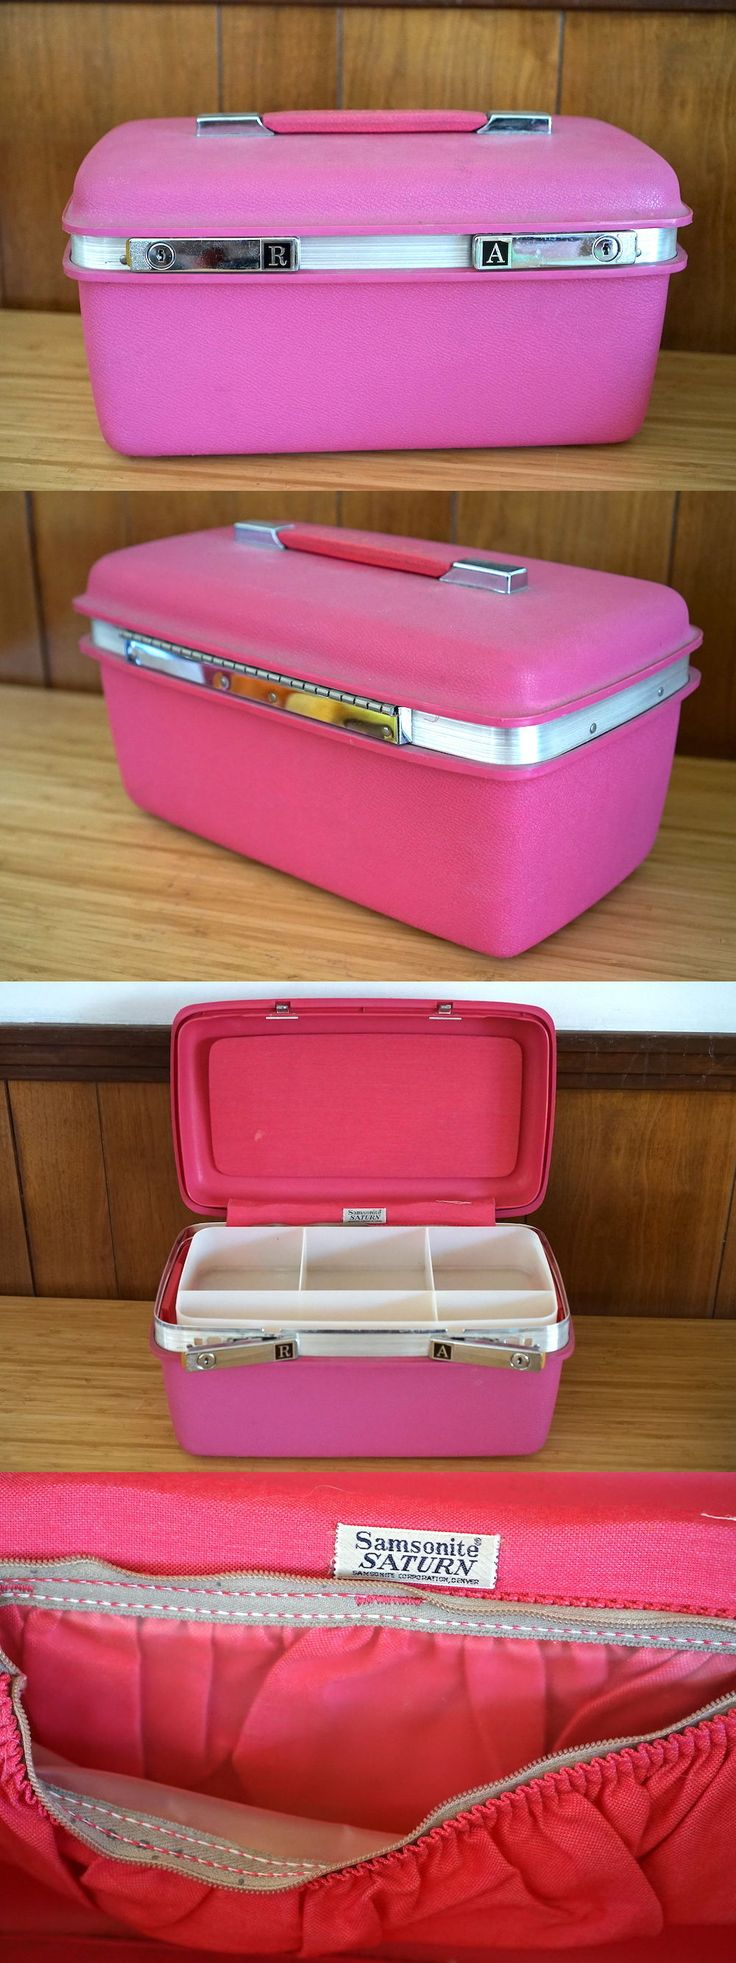 Vintage Luggage and Travel Accs 183477: Vintage Samsonite Pink Silhouette Train Case Makeup Carry On Luggage. -> BUY IT NOW ONLY: $49.99 on eBay!